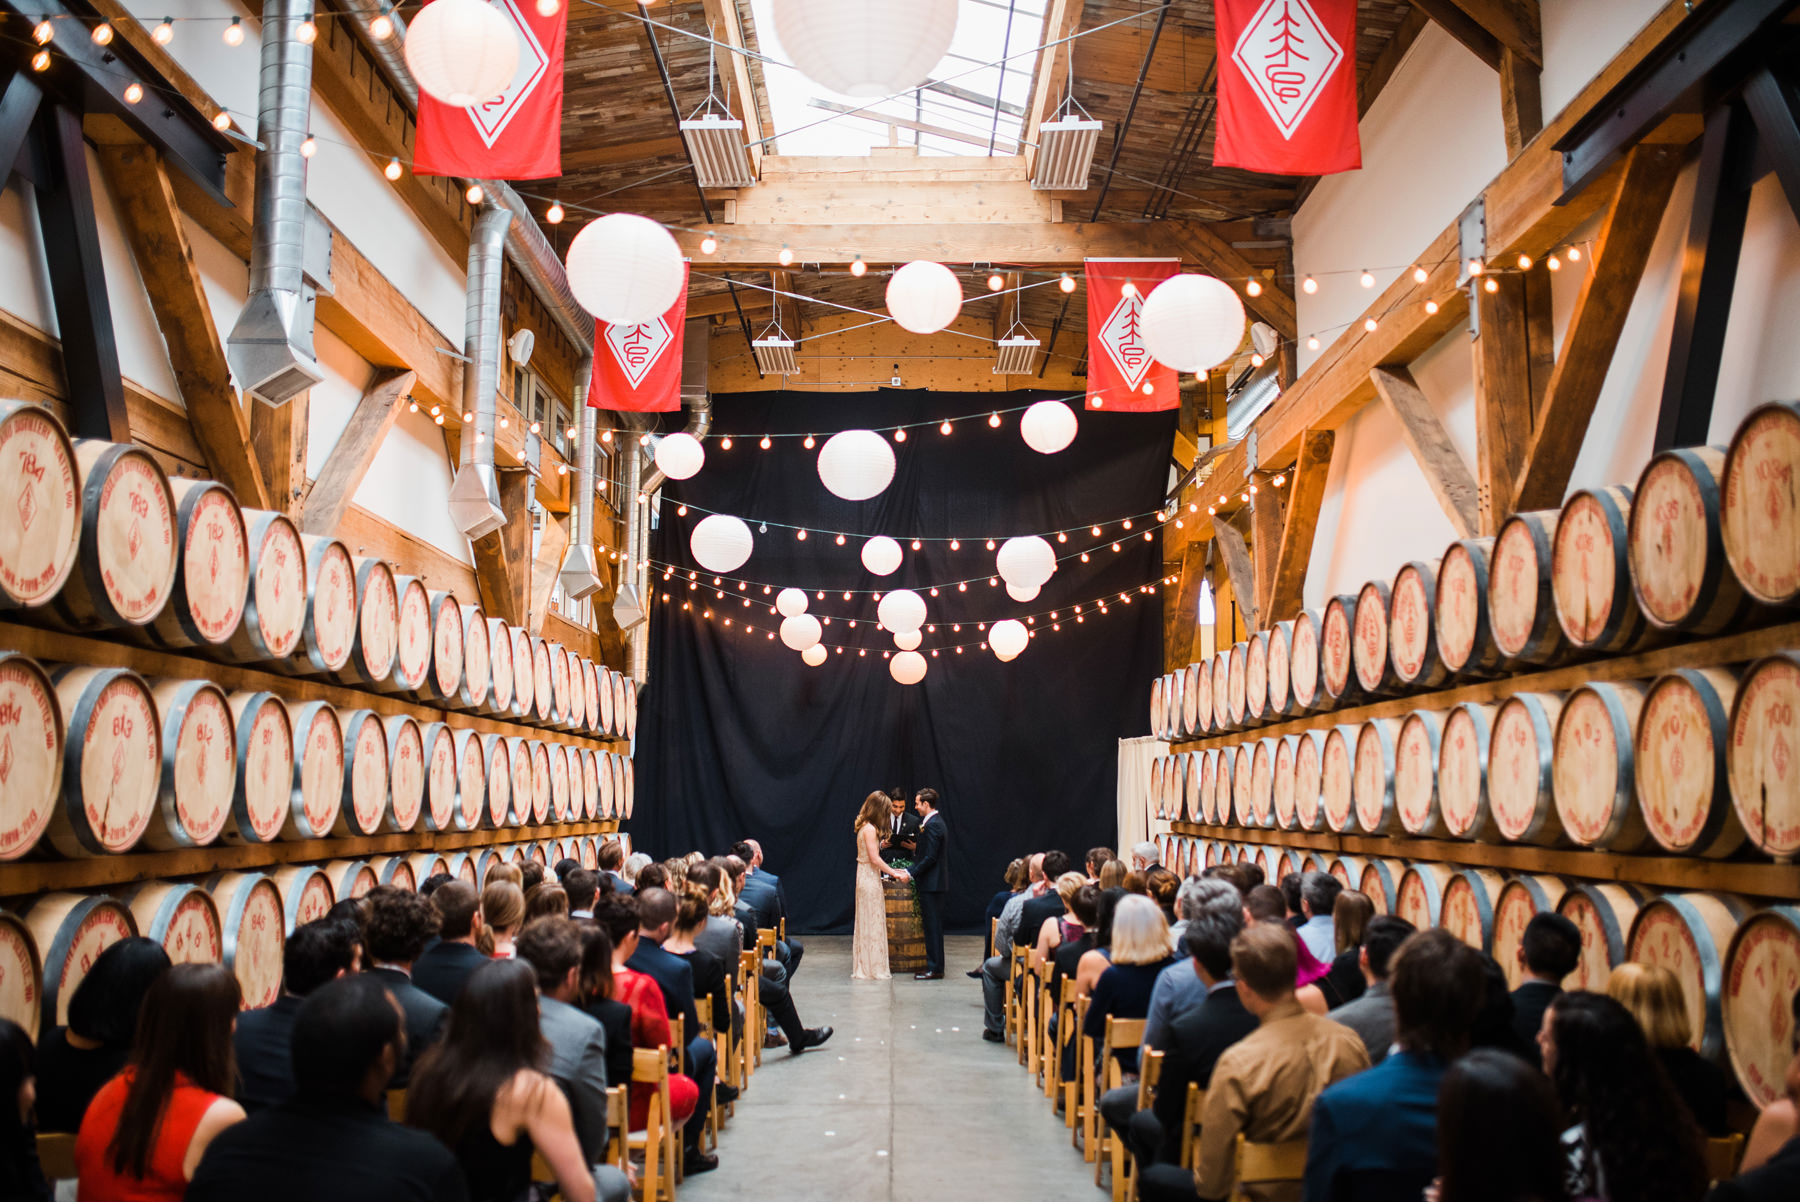 038-wedding-ceremony-among-whiskey-barrels-at-westland-distillery-in-seattle.jpg